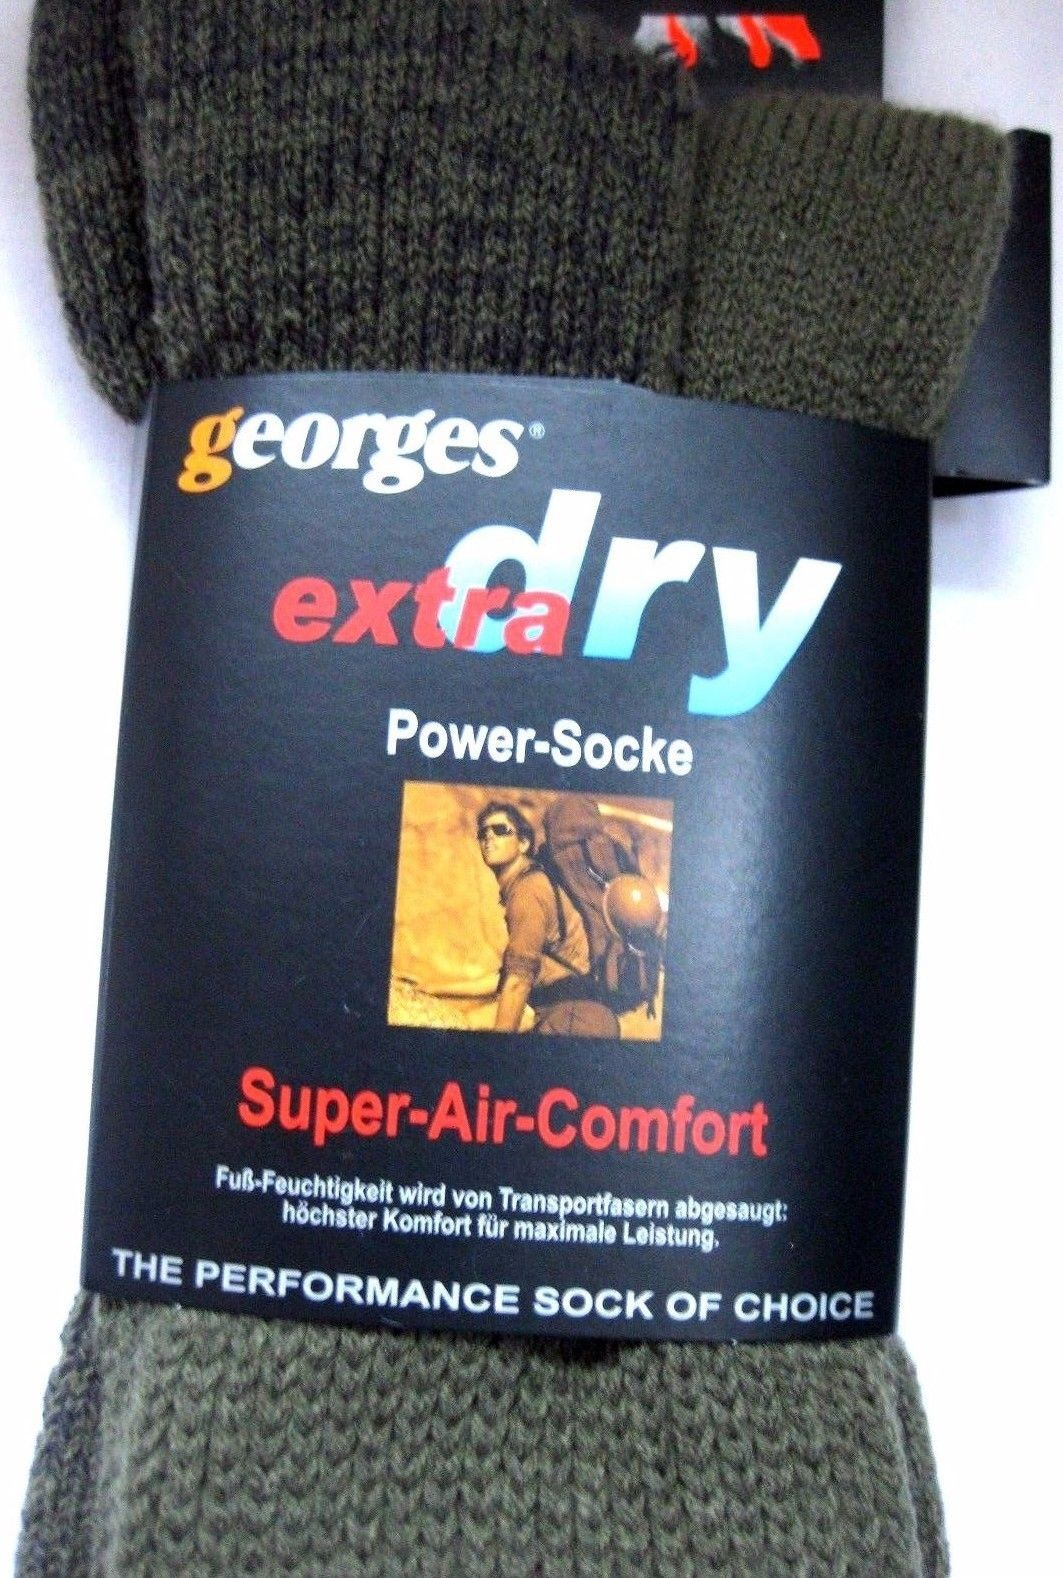 Georges Socken Strümpfe Low Super Air Comfort Powersocke olive 35/38,46/48